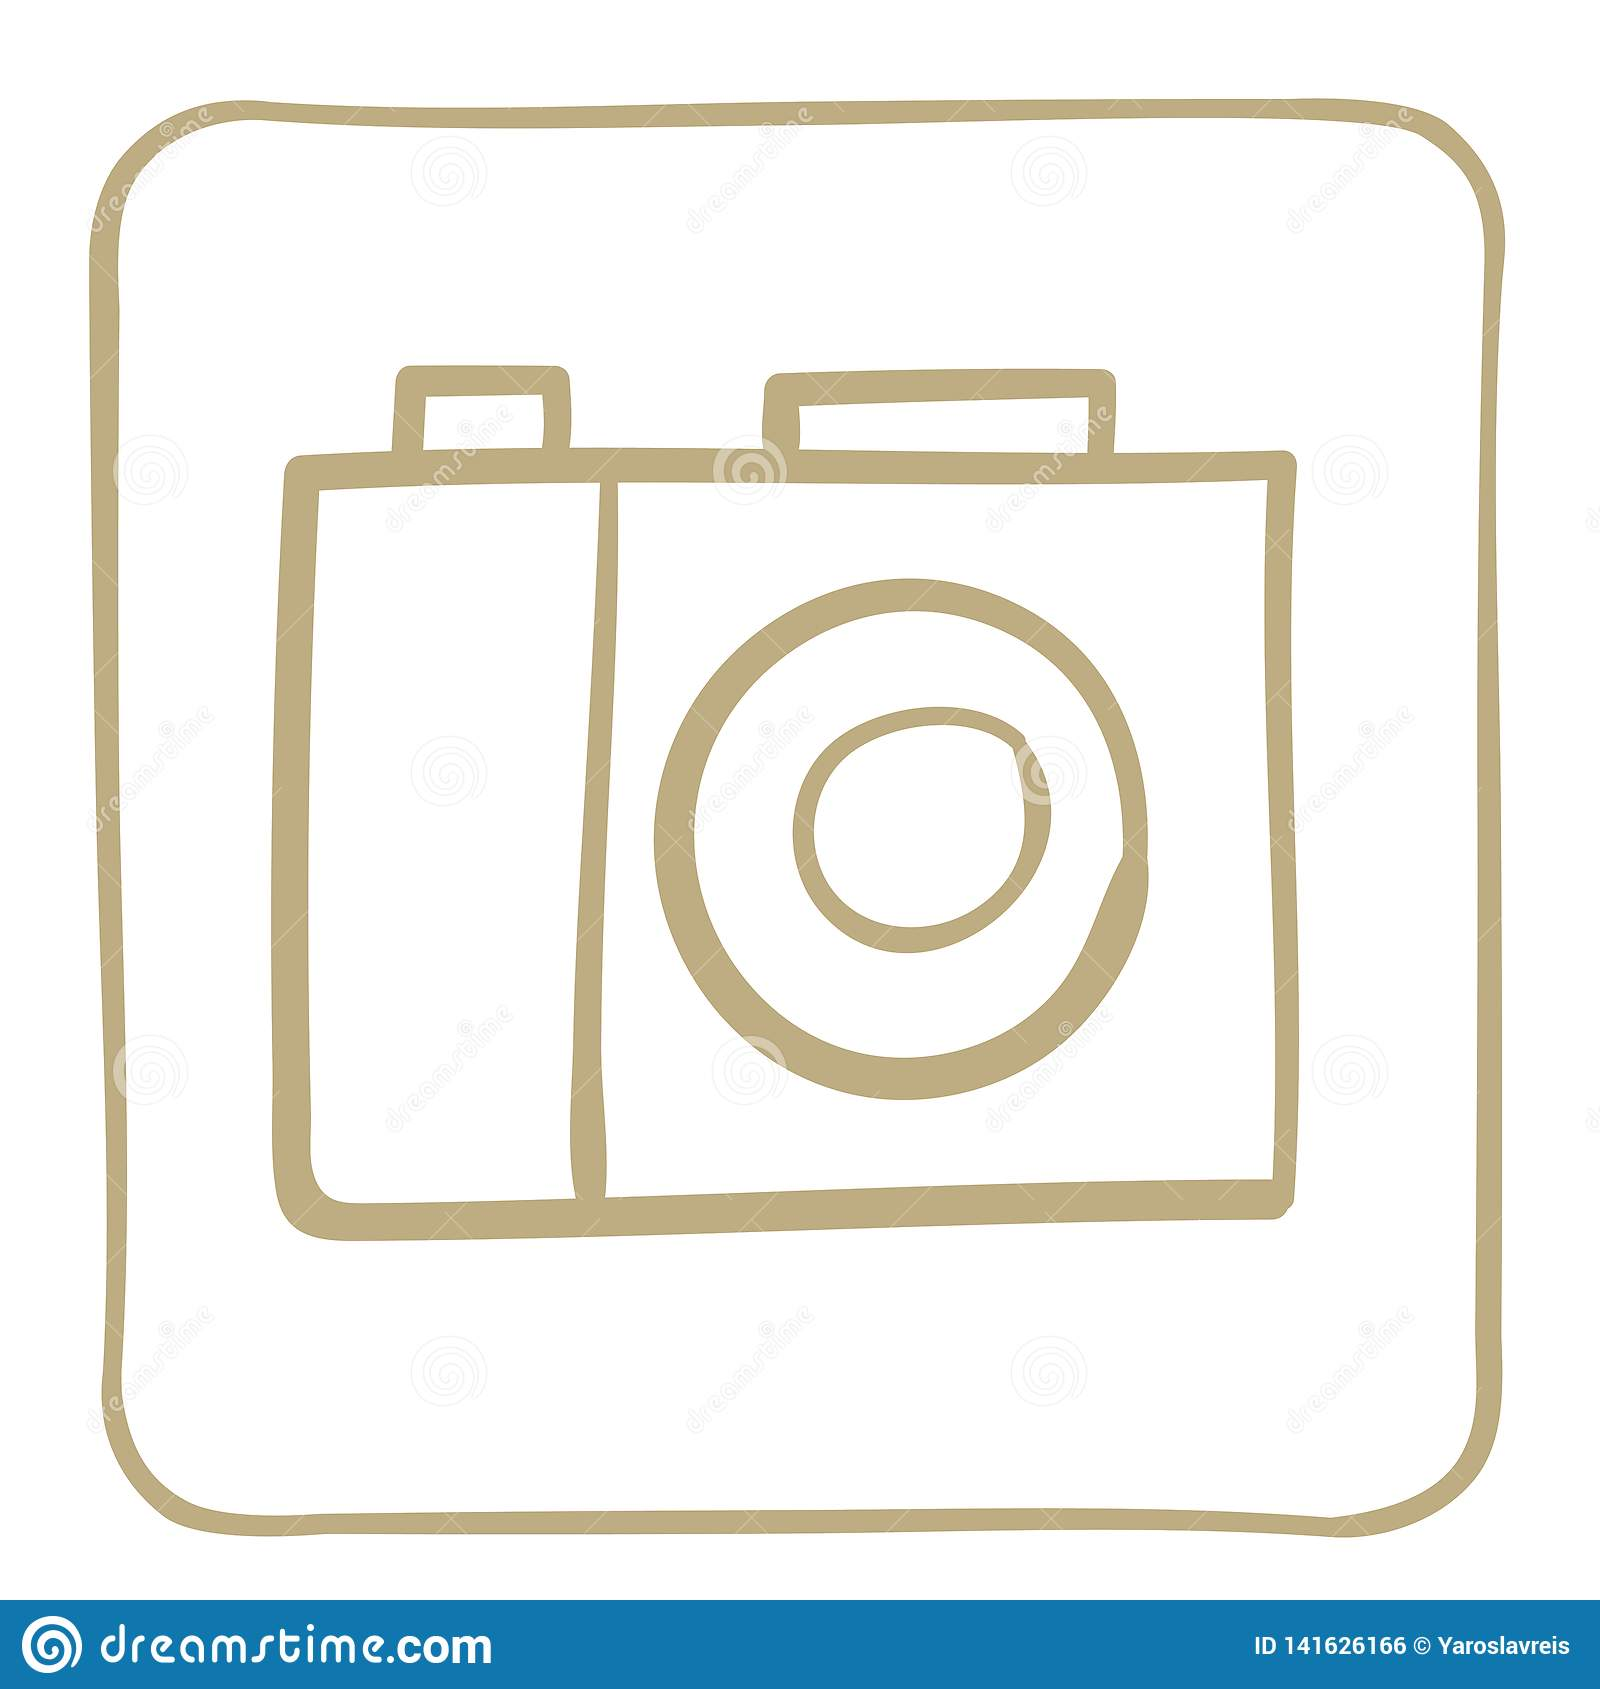 Camera - icon in a light brown frame. Vector graphics.